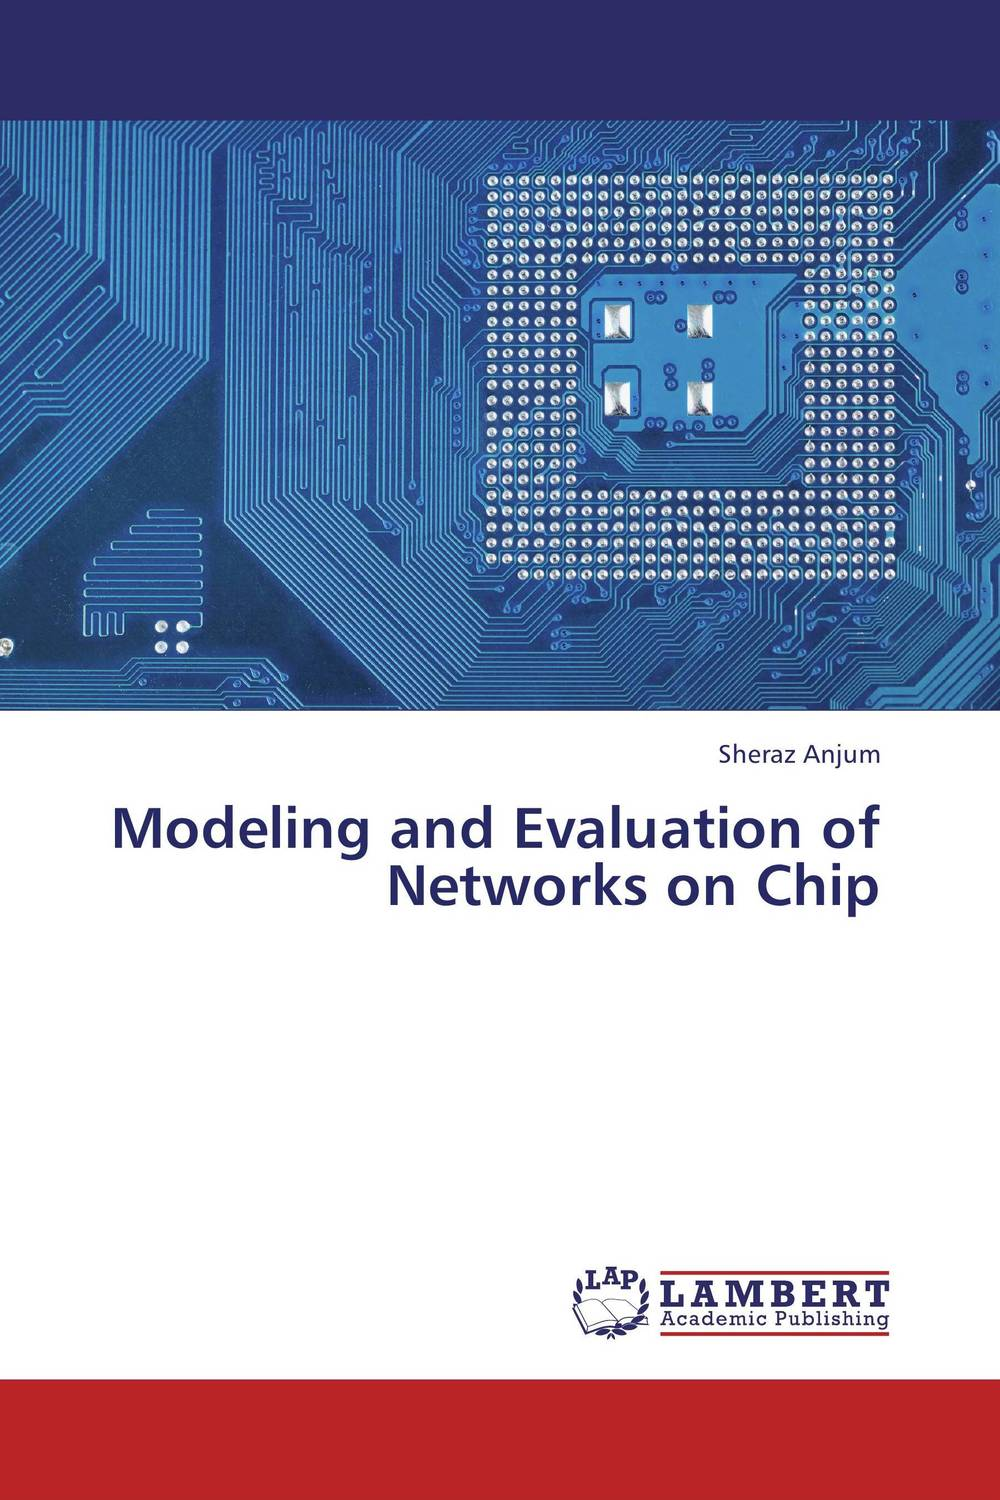 Modeling and Evaluation of Networks on Chip modeling and evaluation of networks on chip